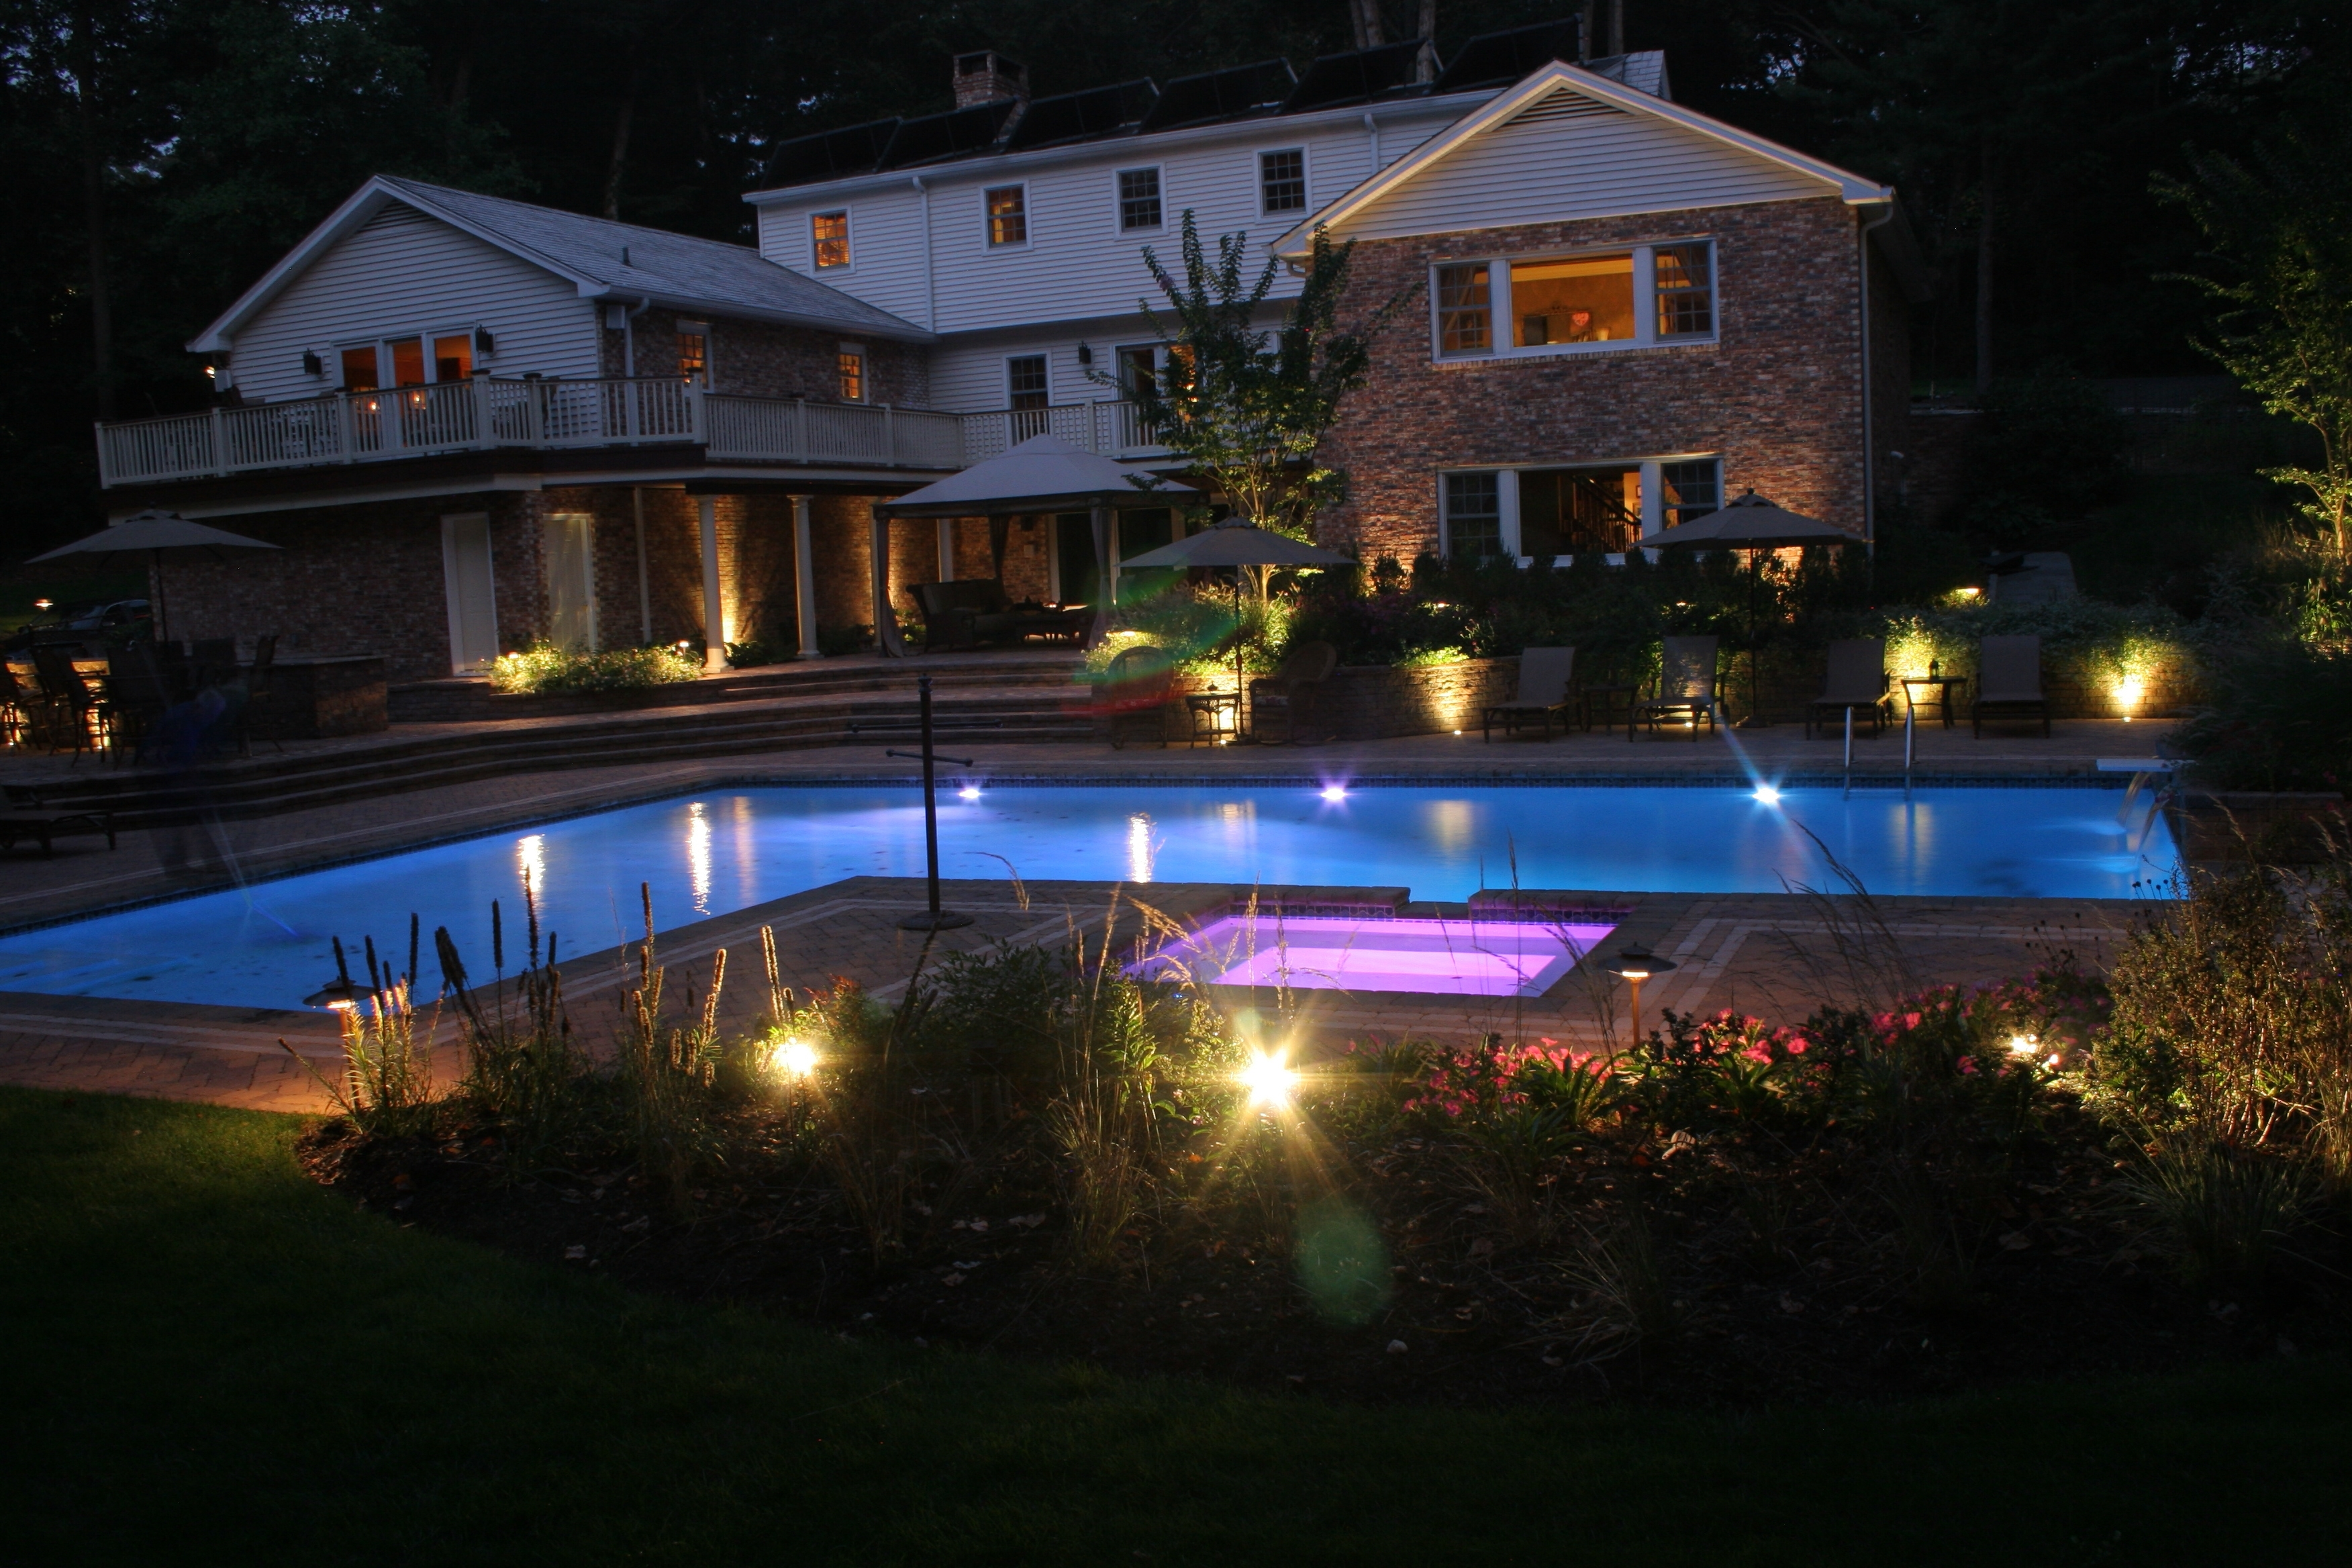 Low Voltage Outdoor Lighting Intended For Most Popular Lamp: Efficient Lighting Solution With Hampton Bay Low Voltage (View 11 of 20)